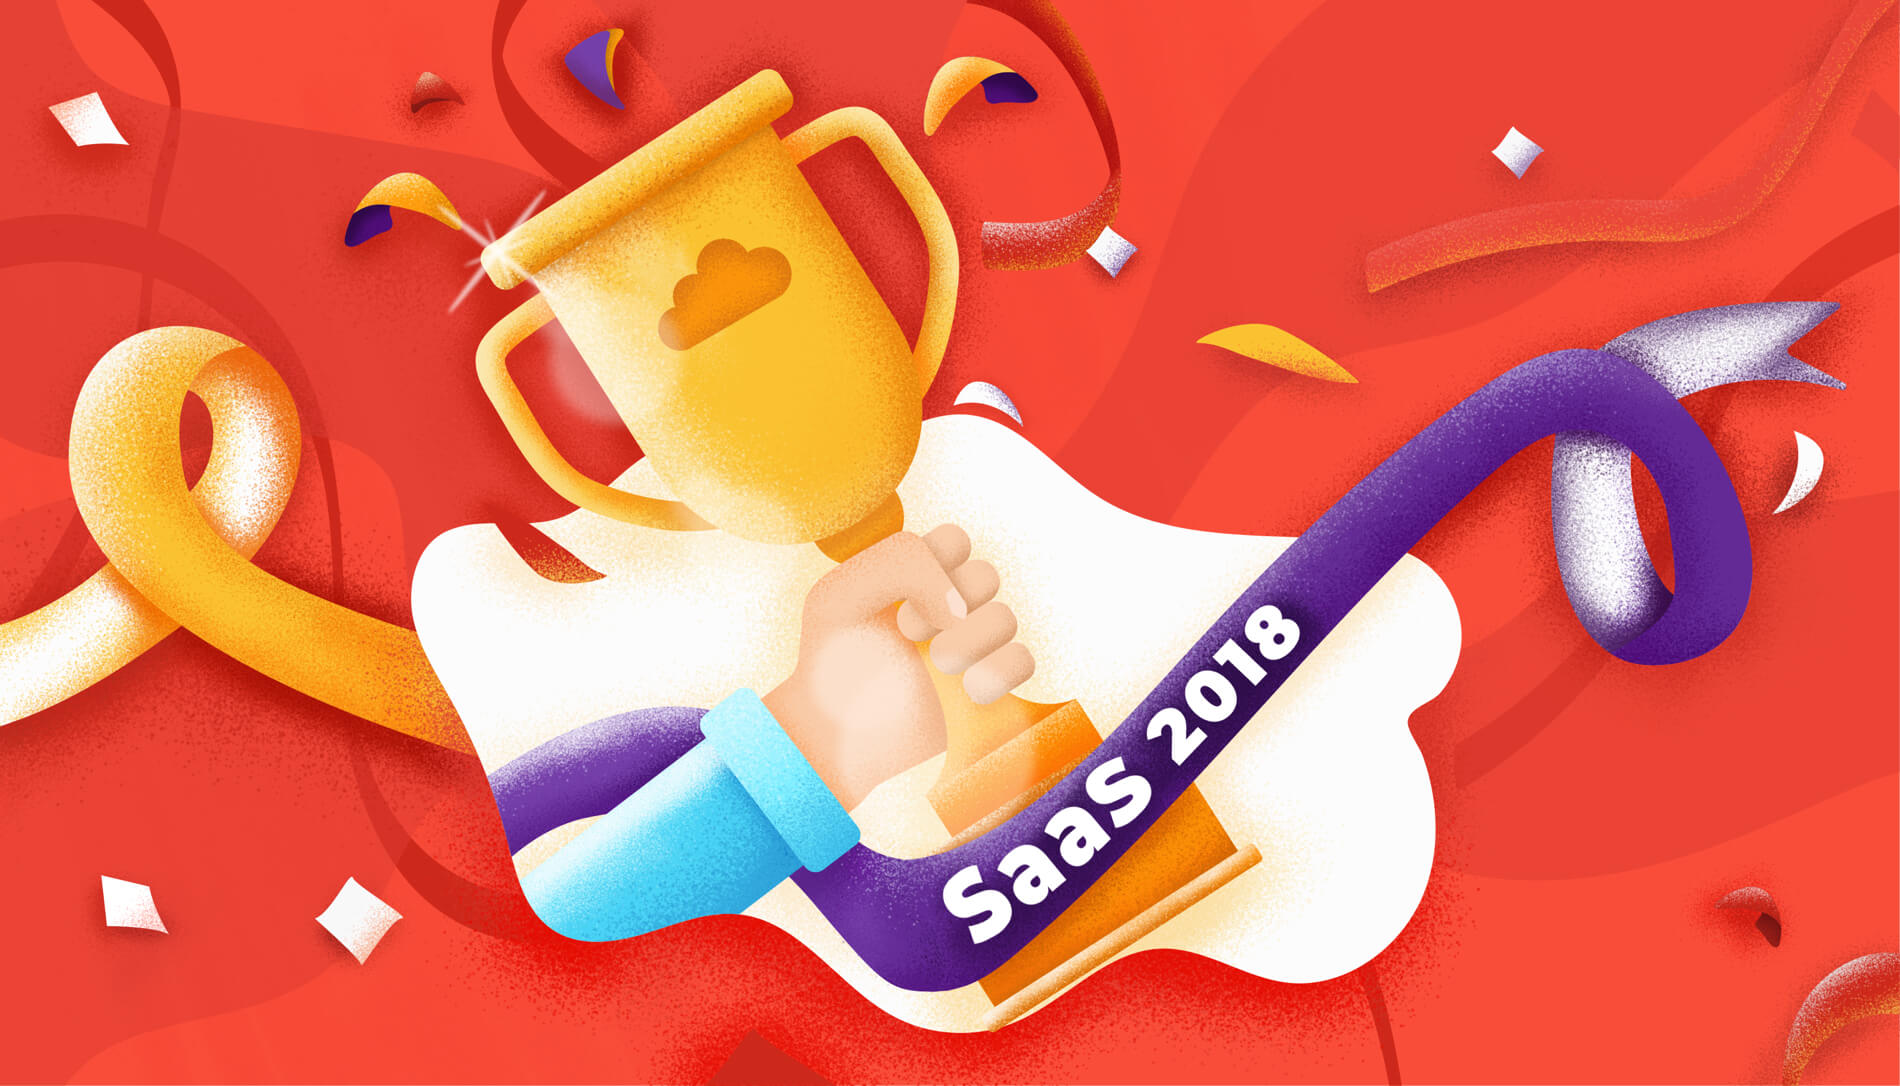 The Fastest Growing SaaS Companies of 2018